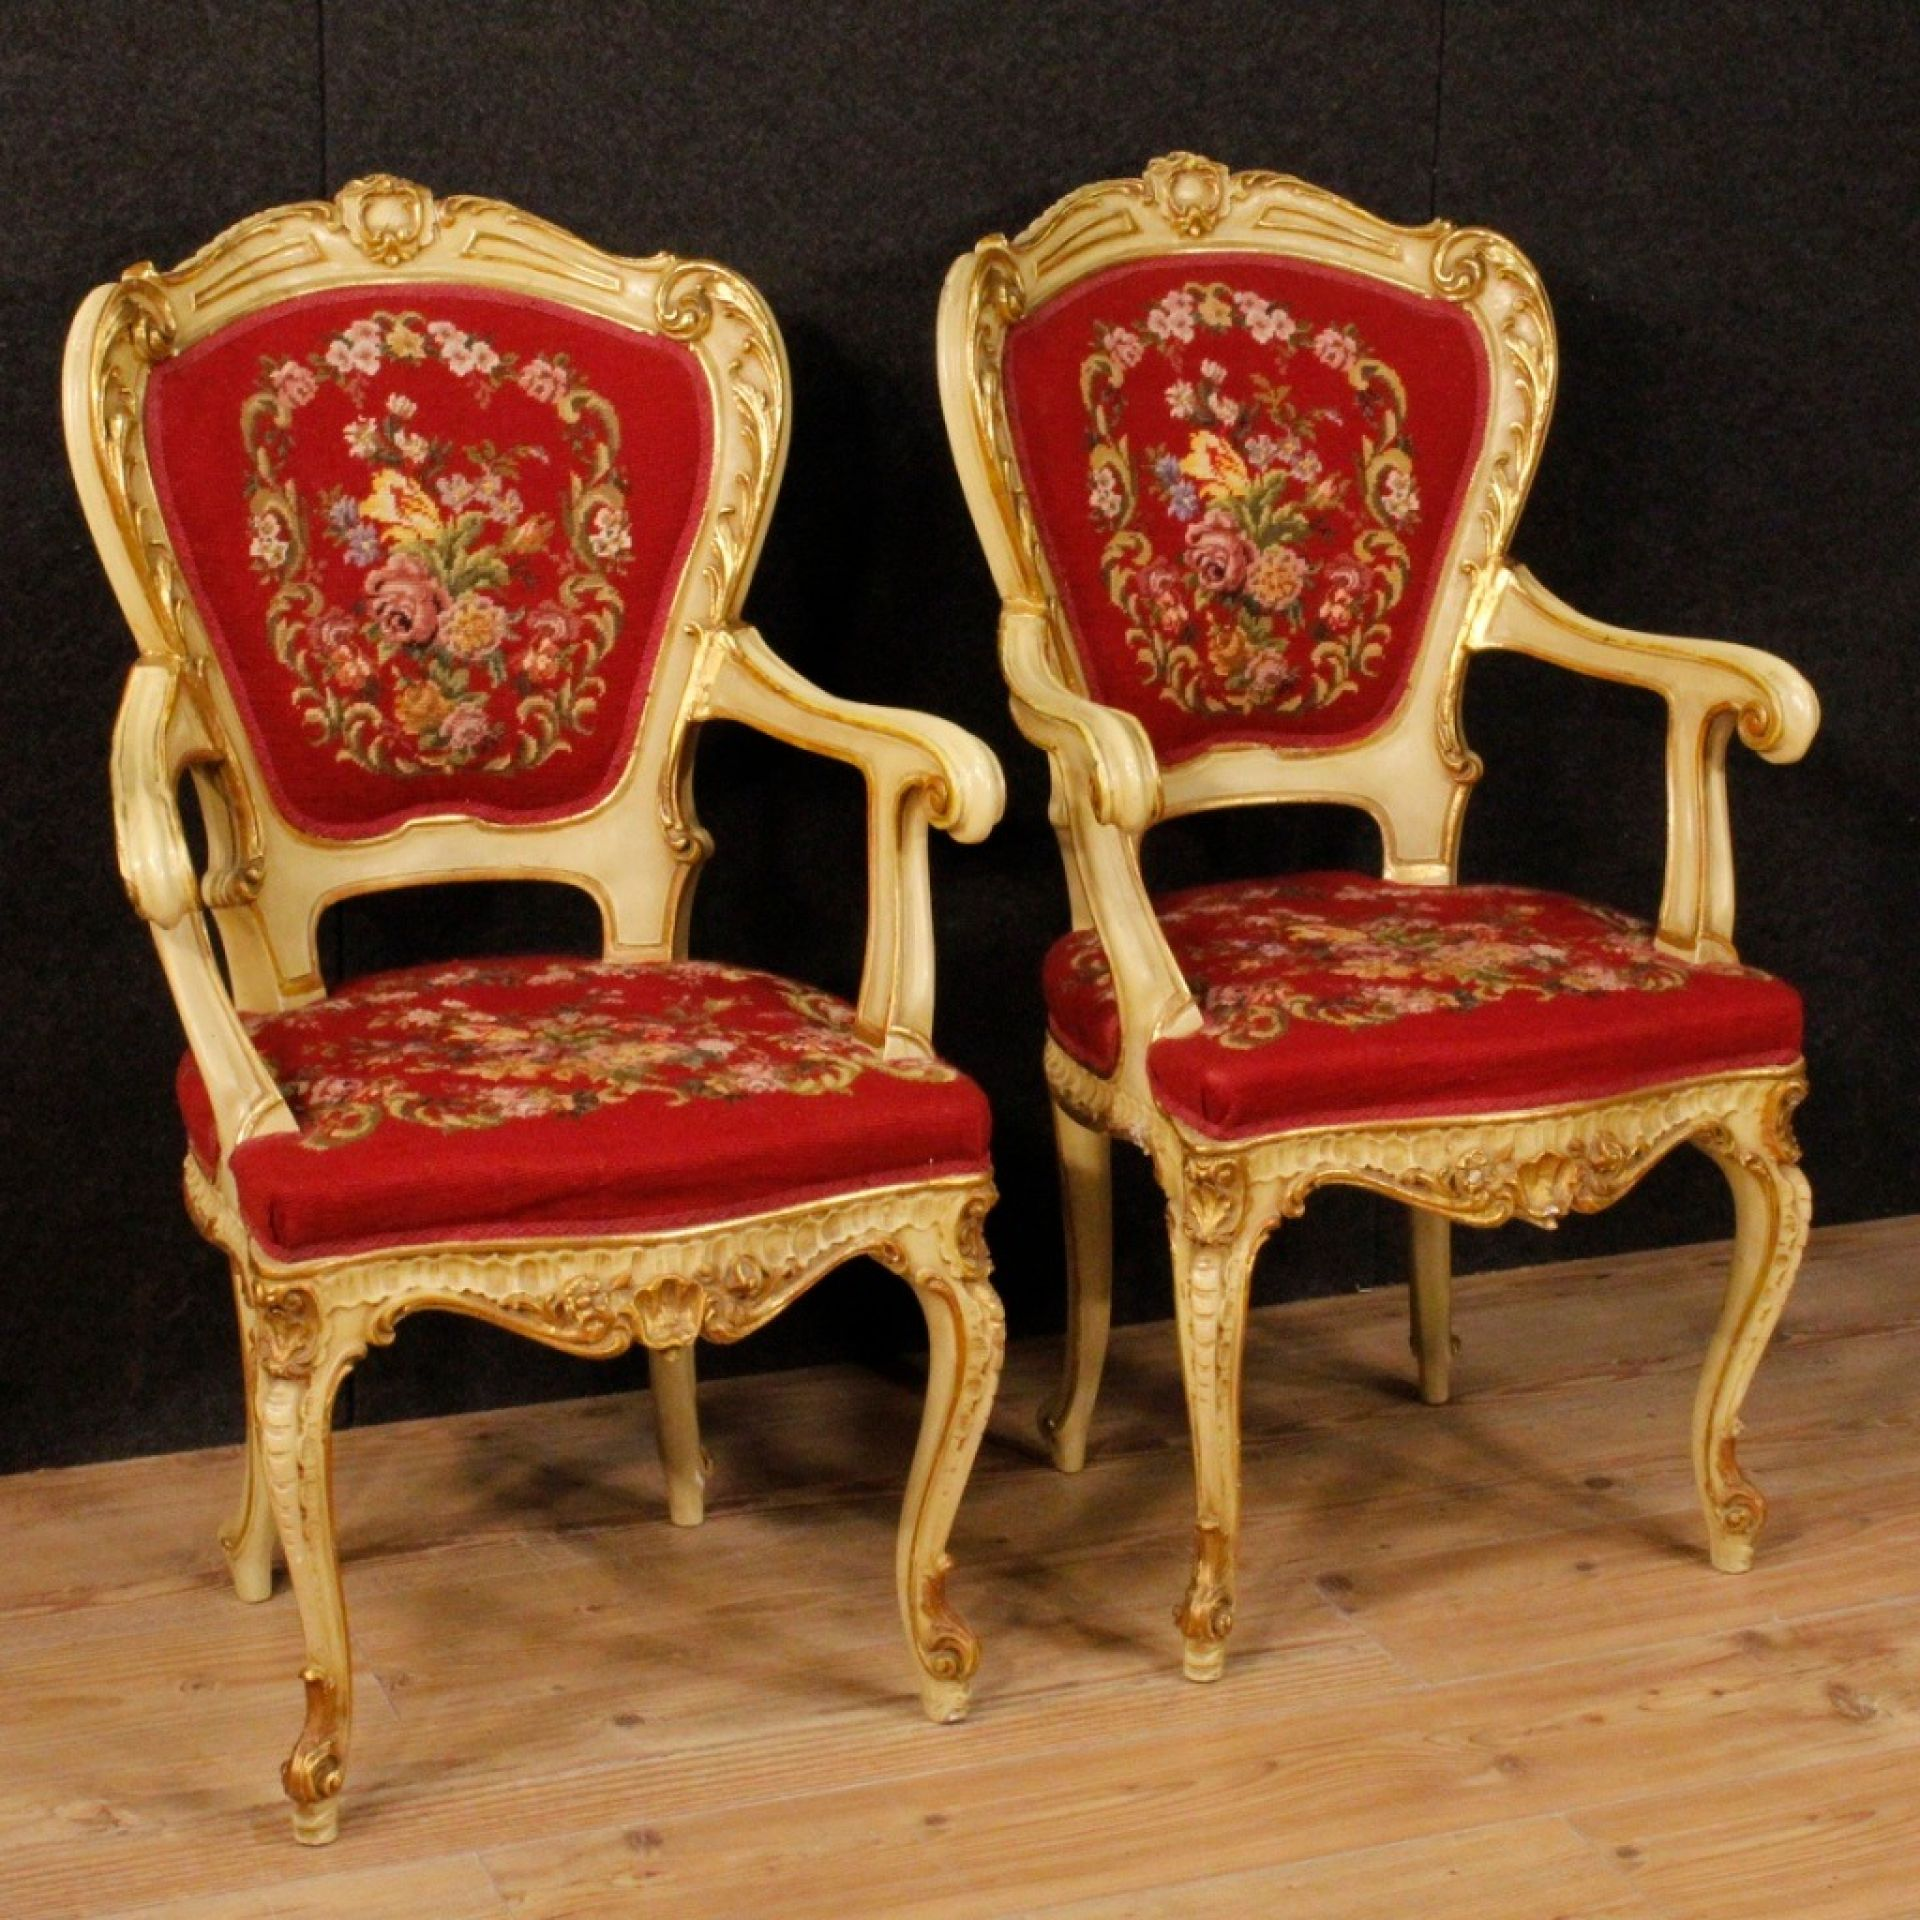 20th Century Lacquered, Gilt Wood, Plaster Red Fabric Venetian Armchairs, 1970